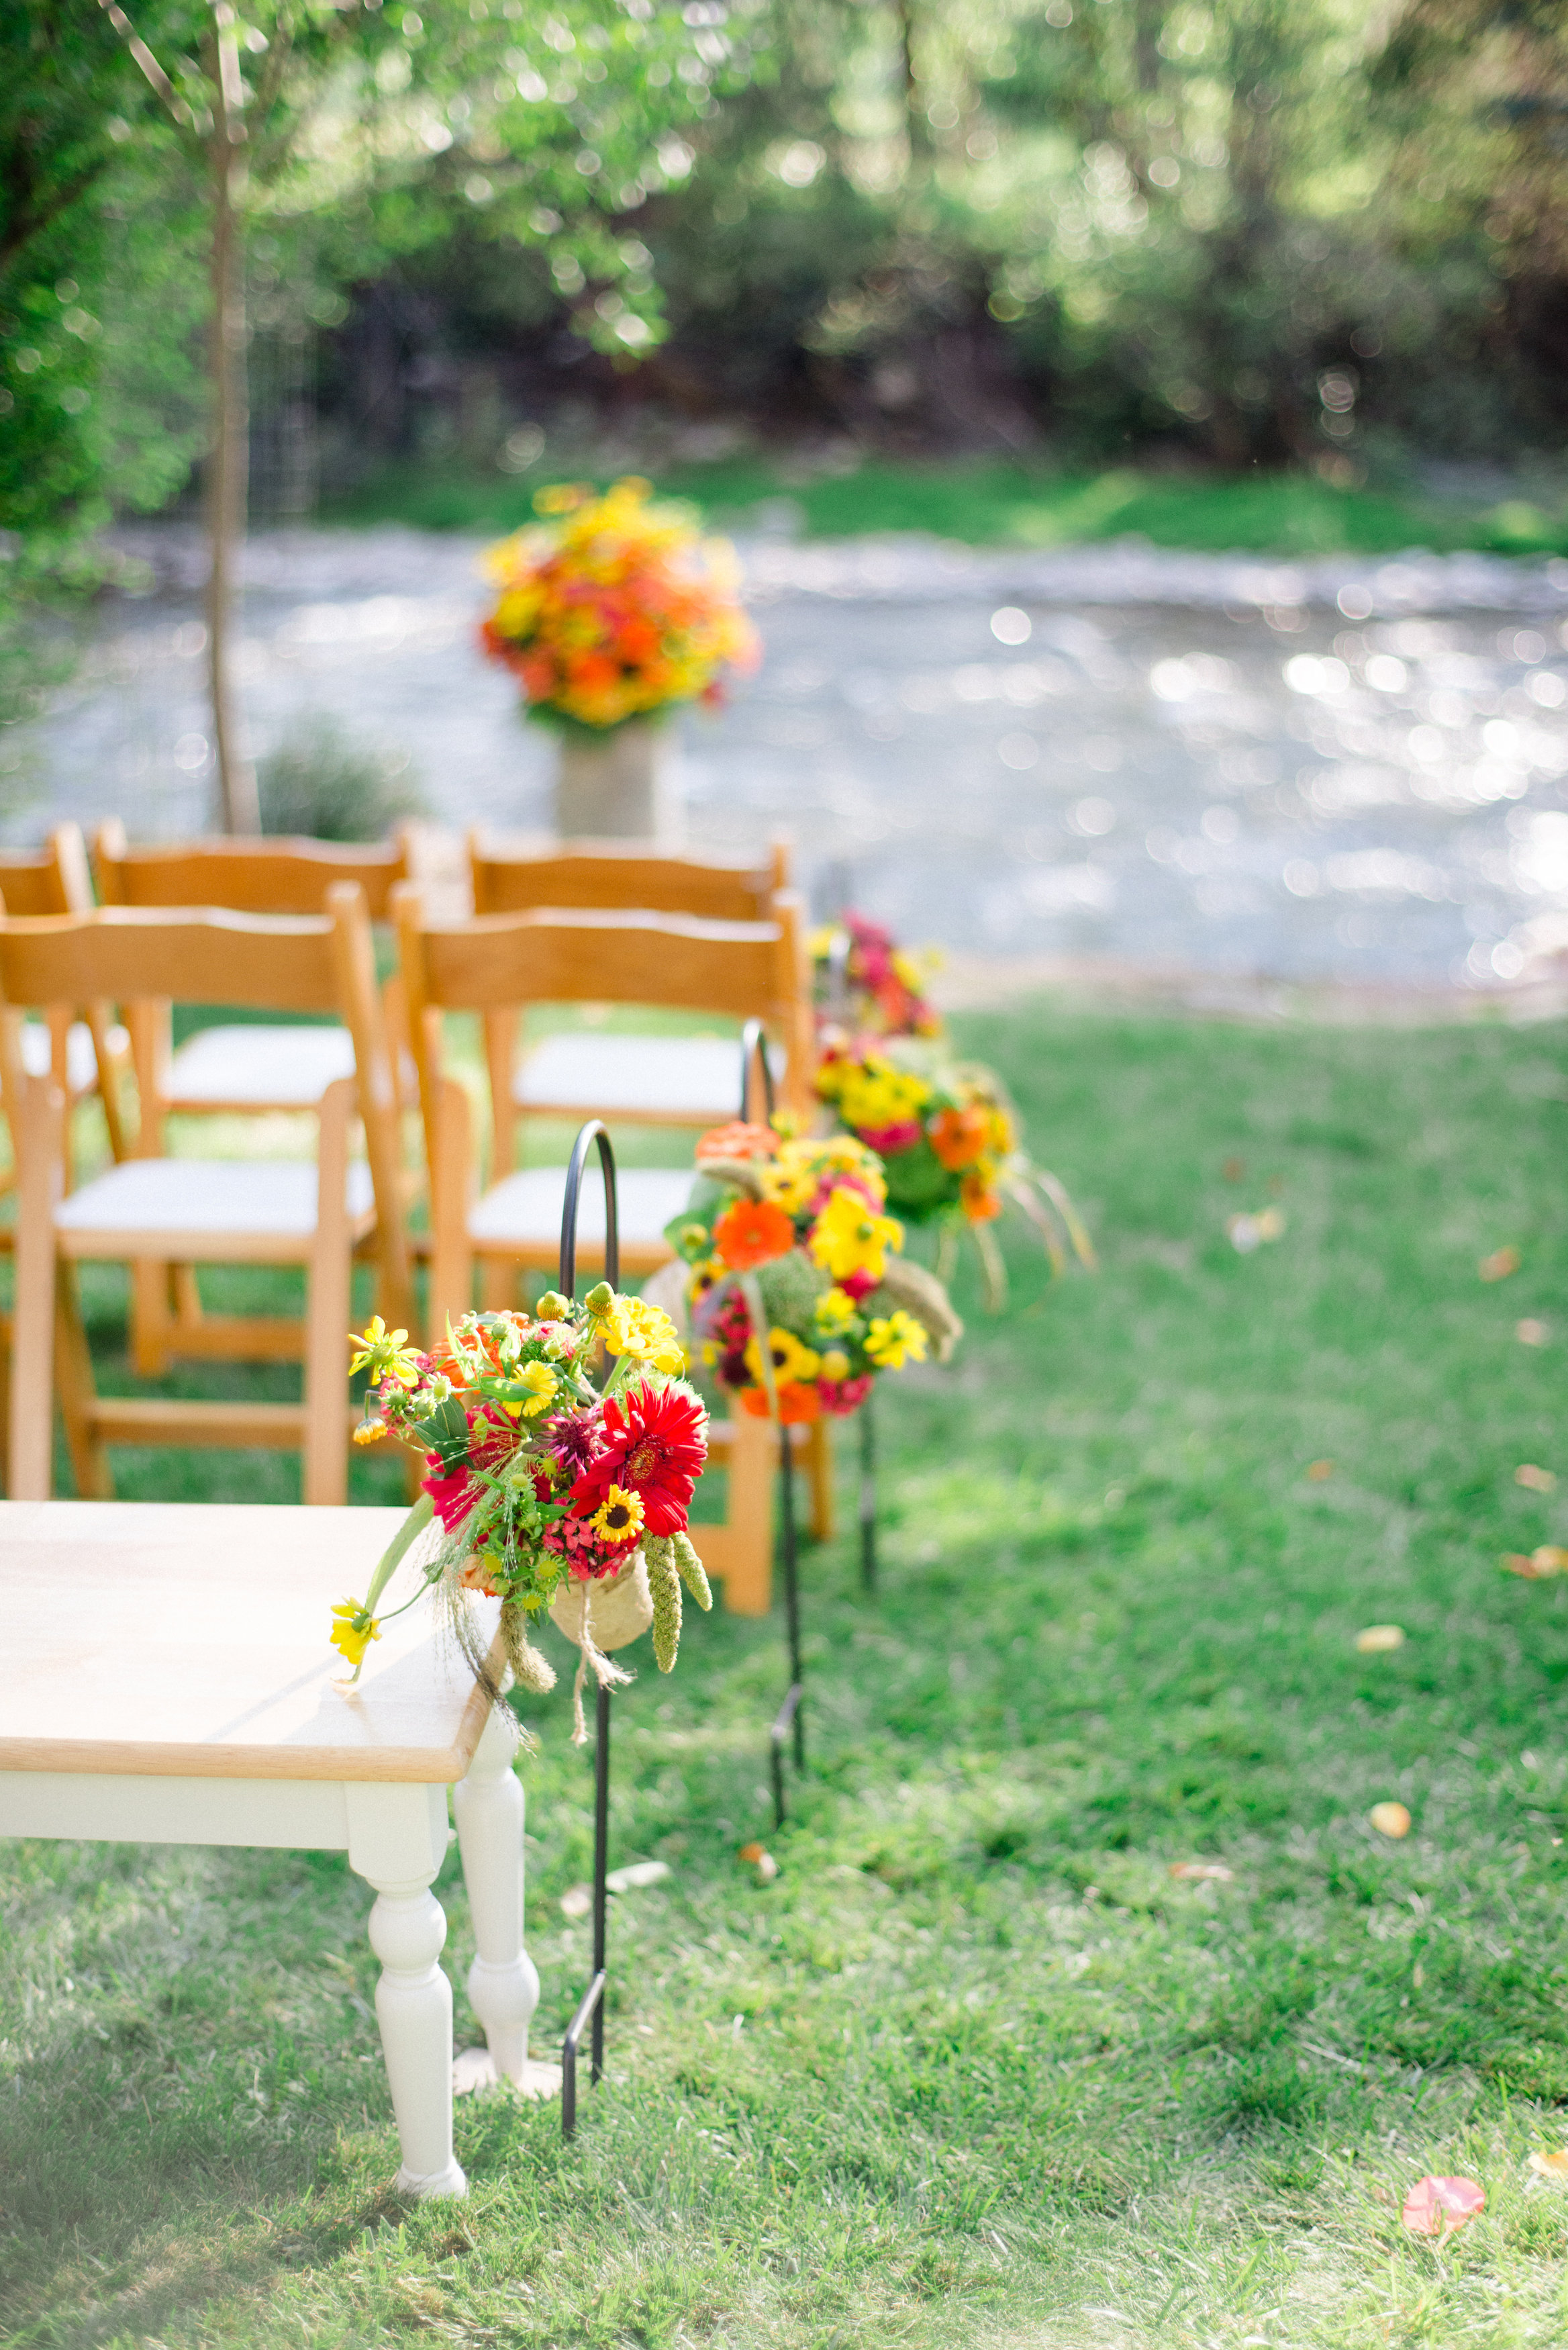 Cheerful Aisle Bouquets